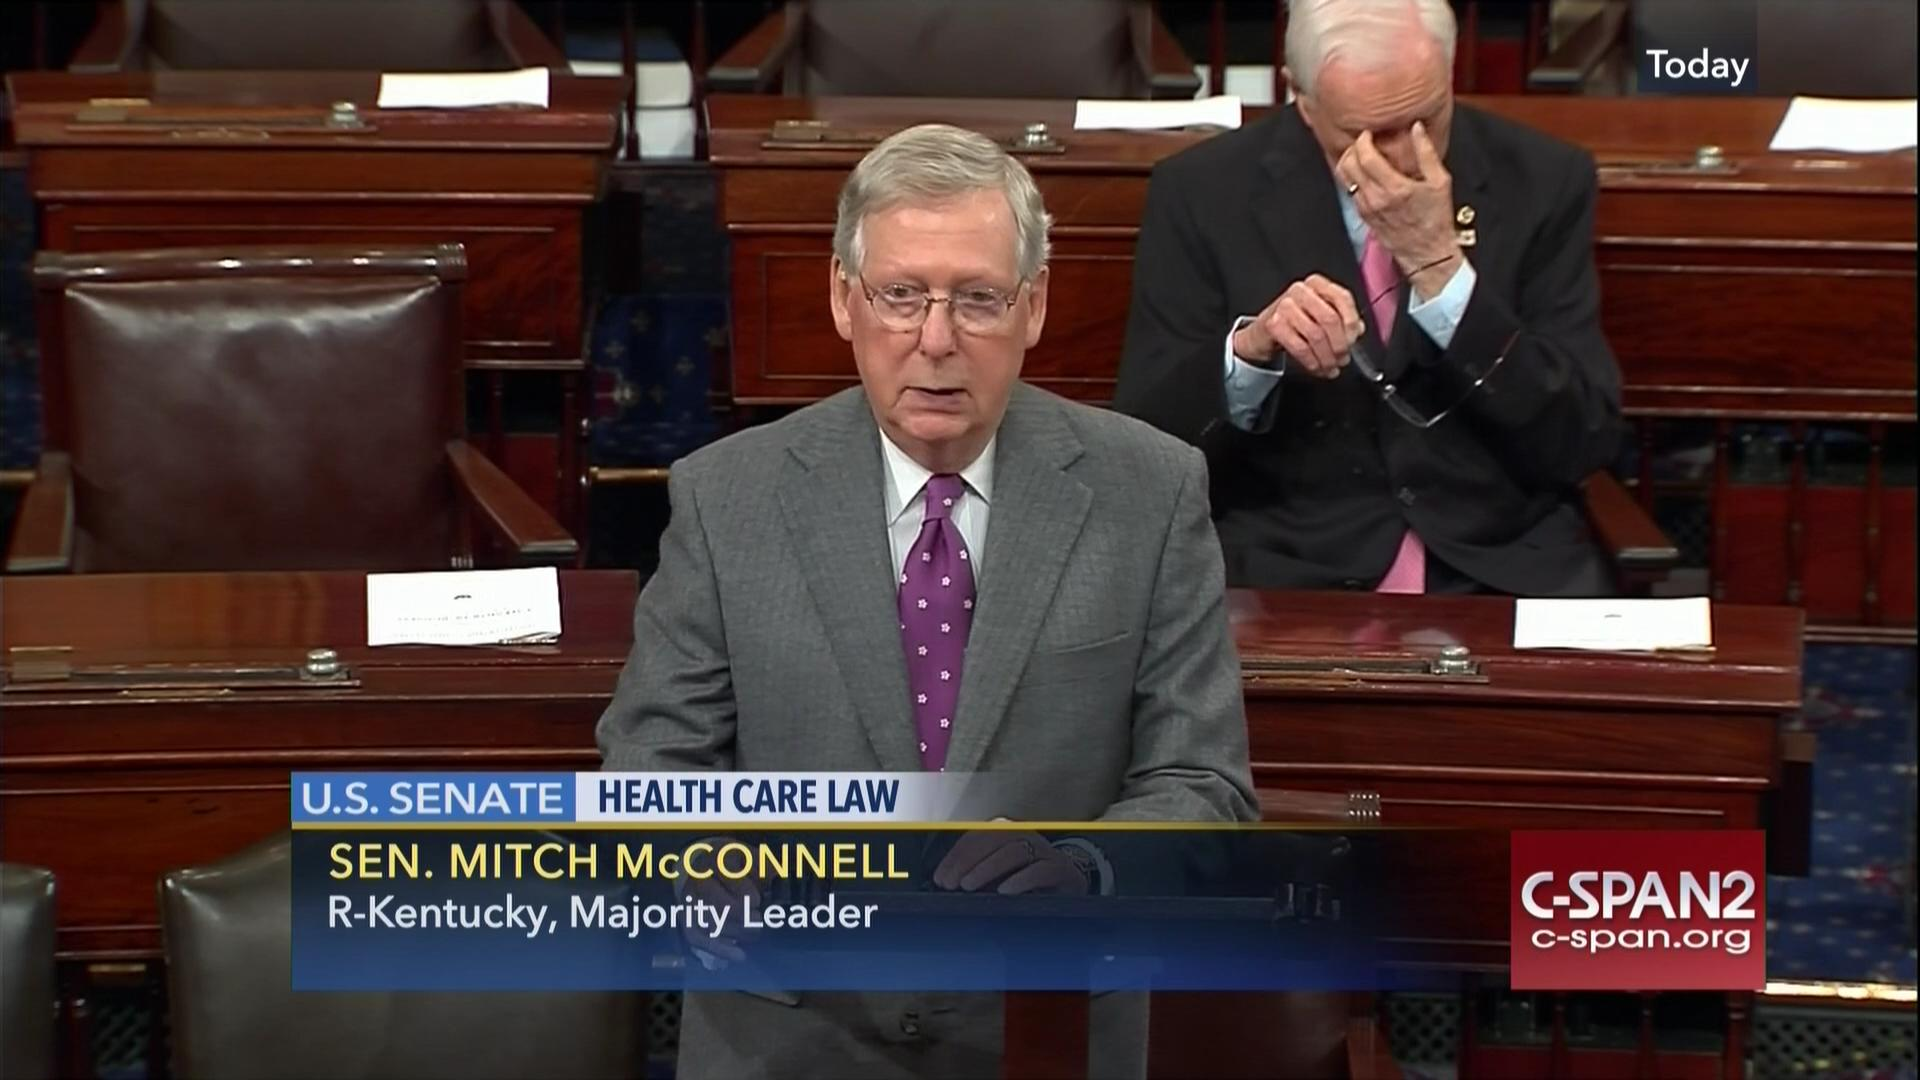 senator mcconnell 115th congress goals, jan 4 2017 | c-span